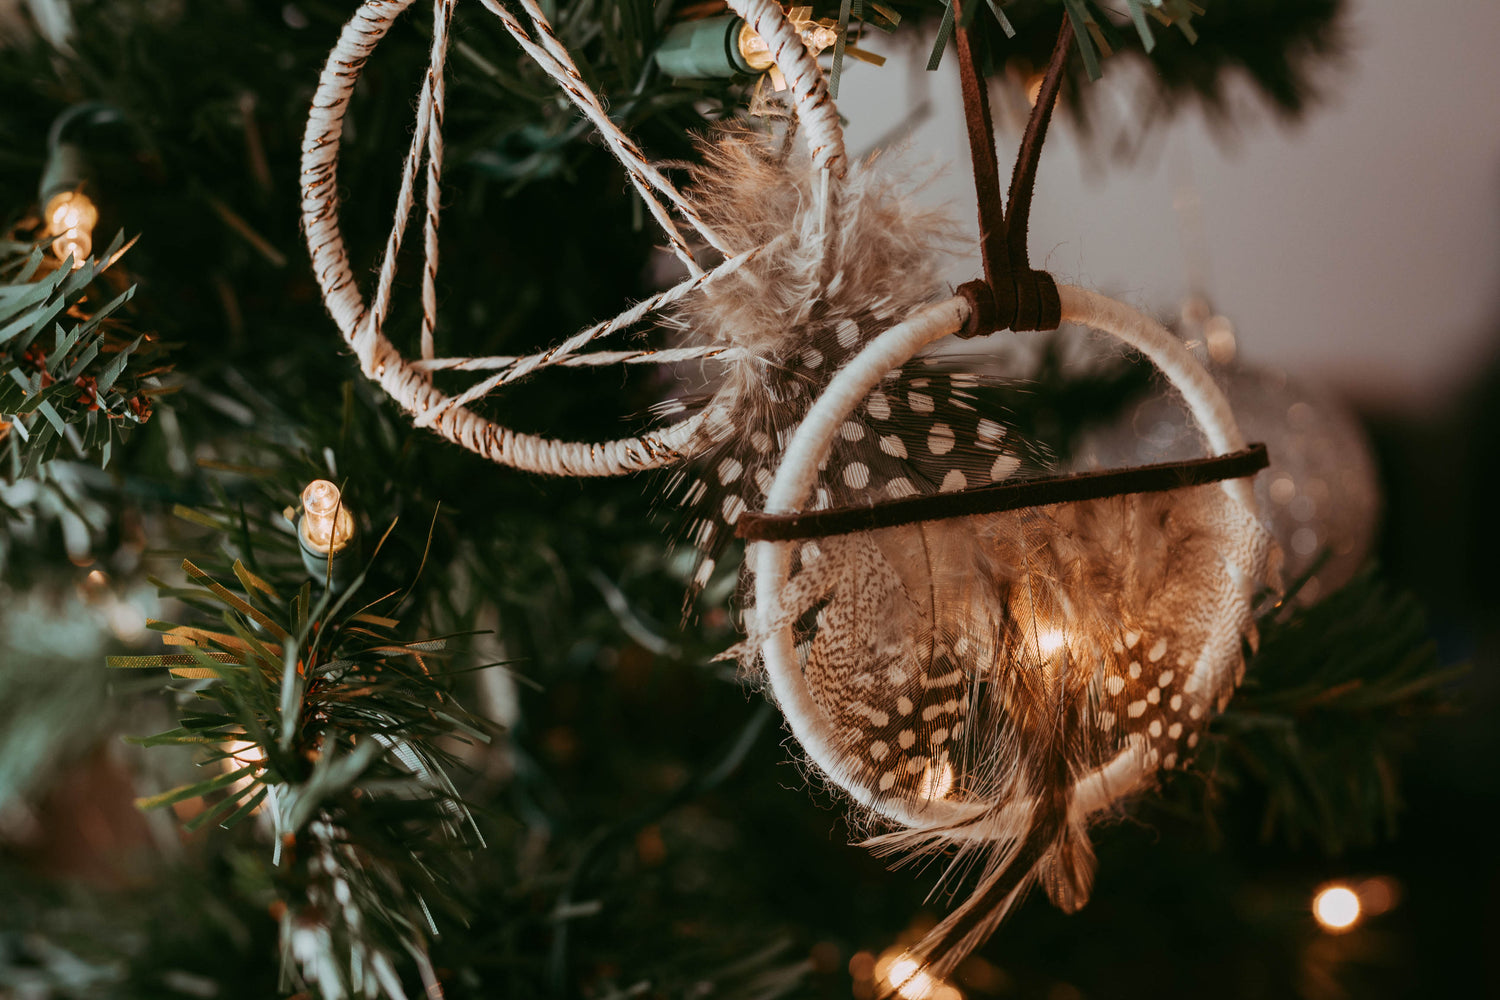 Cabin in the Woods Dream Catcher Ornament